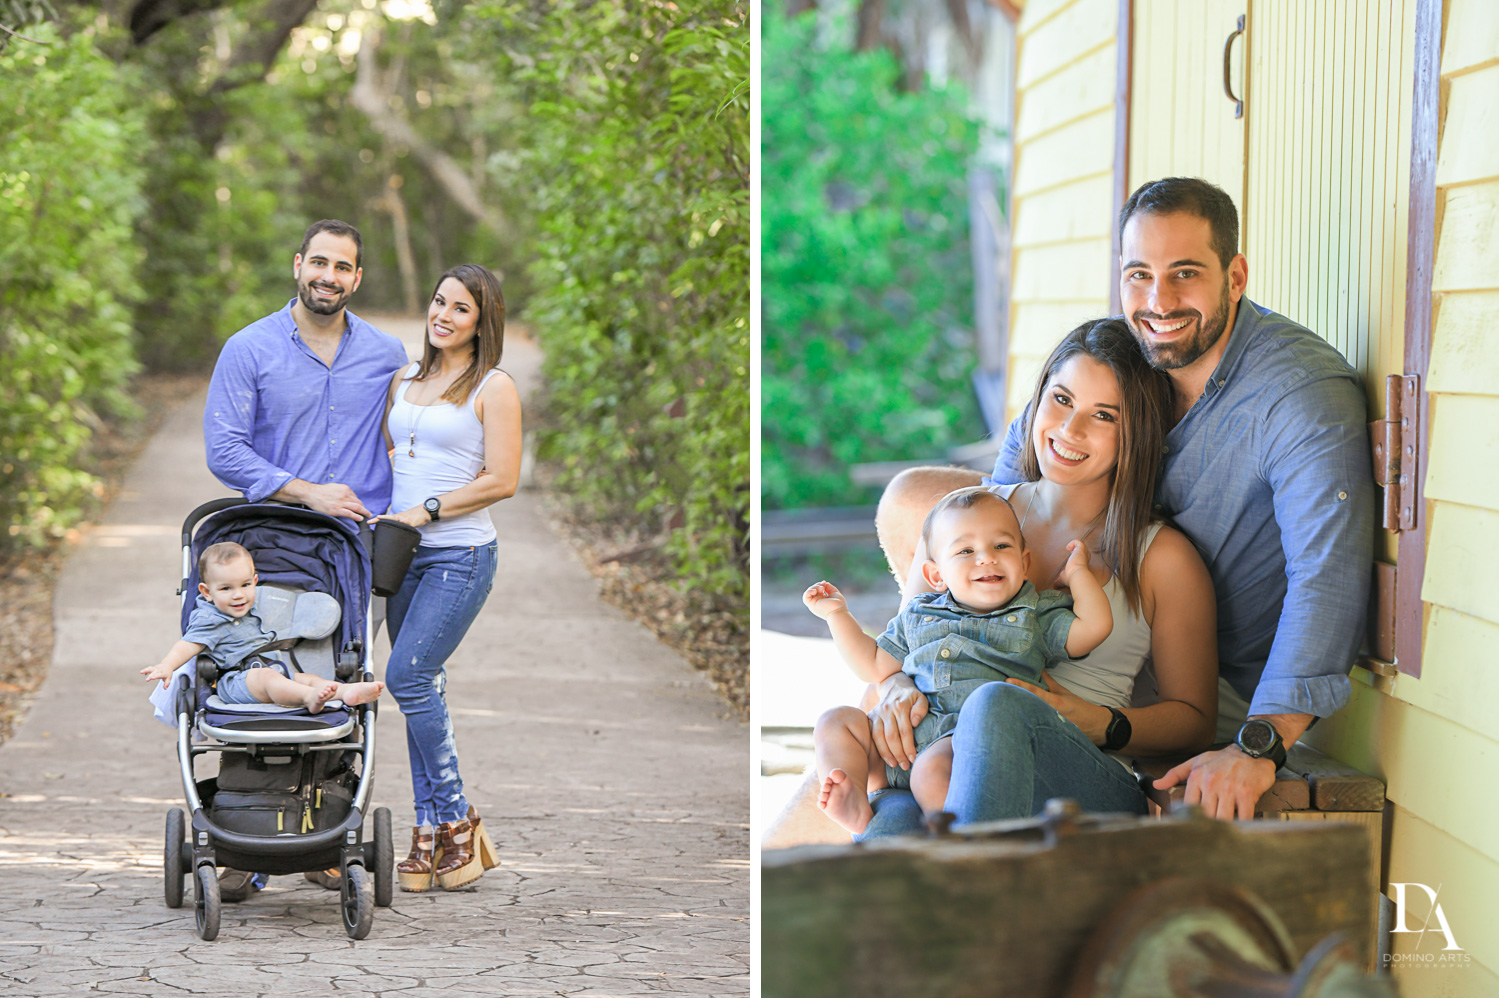 est portraits at Urban baby Photo Session in Coral Gables by Domino Arts Photography